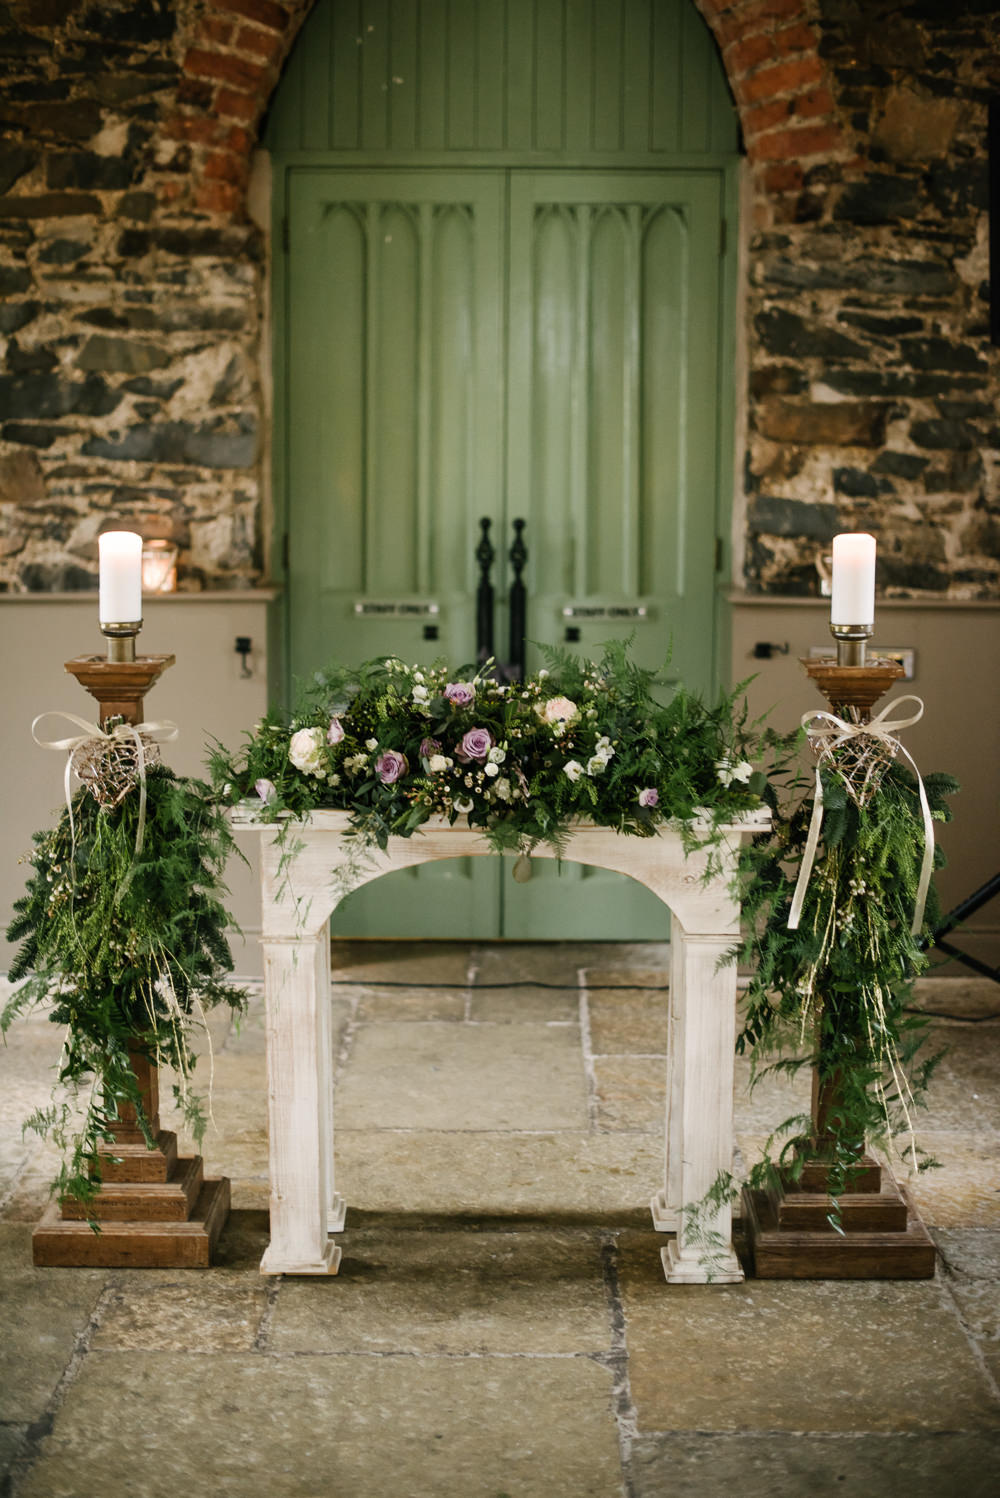 Decor Fireplace Greenery Foliage Candlesticks Purple Rose Orange Tree House Wedding Winter You Them Us Photography